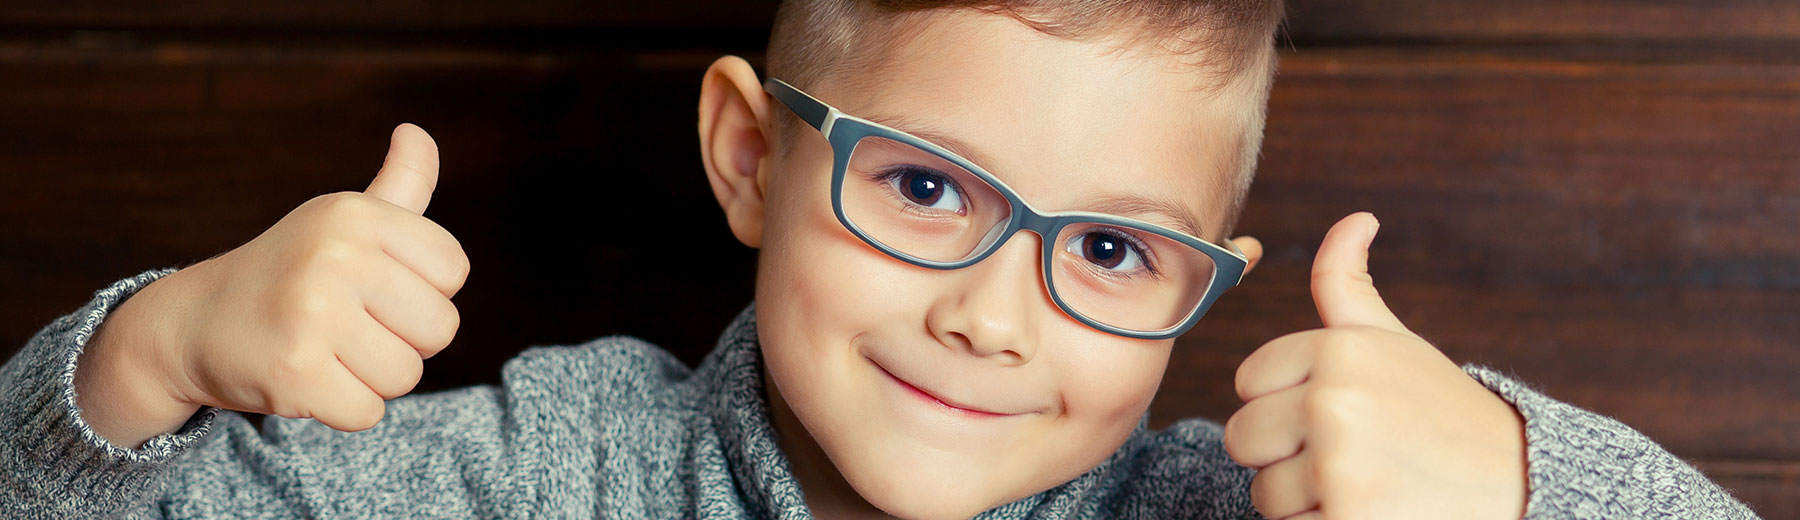 young boy child wearing glasses thumbs up